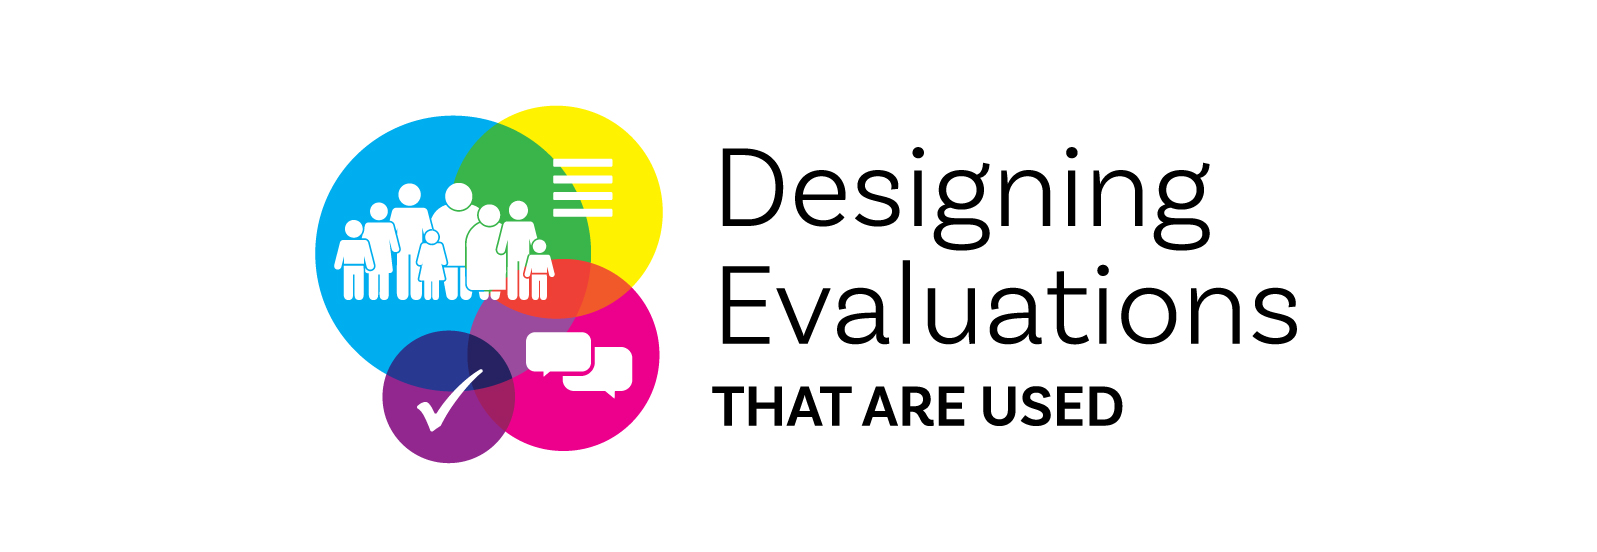 Designing Evaluations That are Used